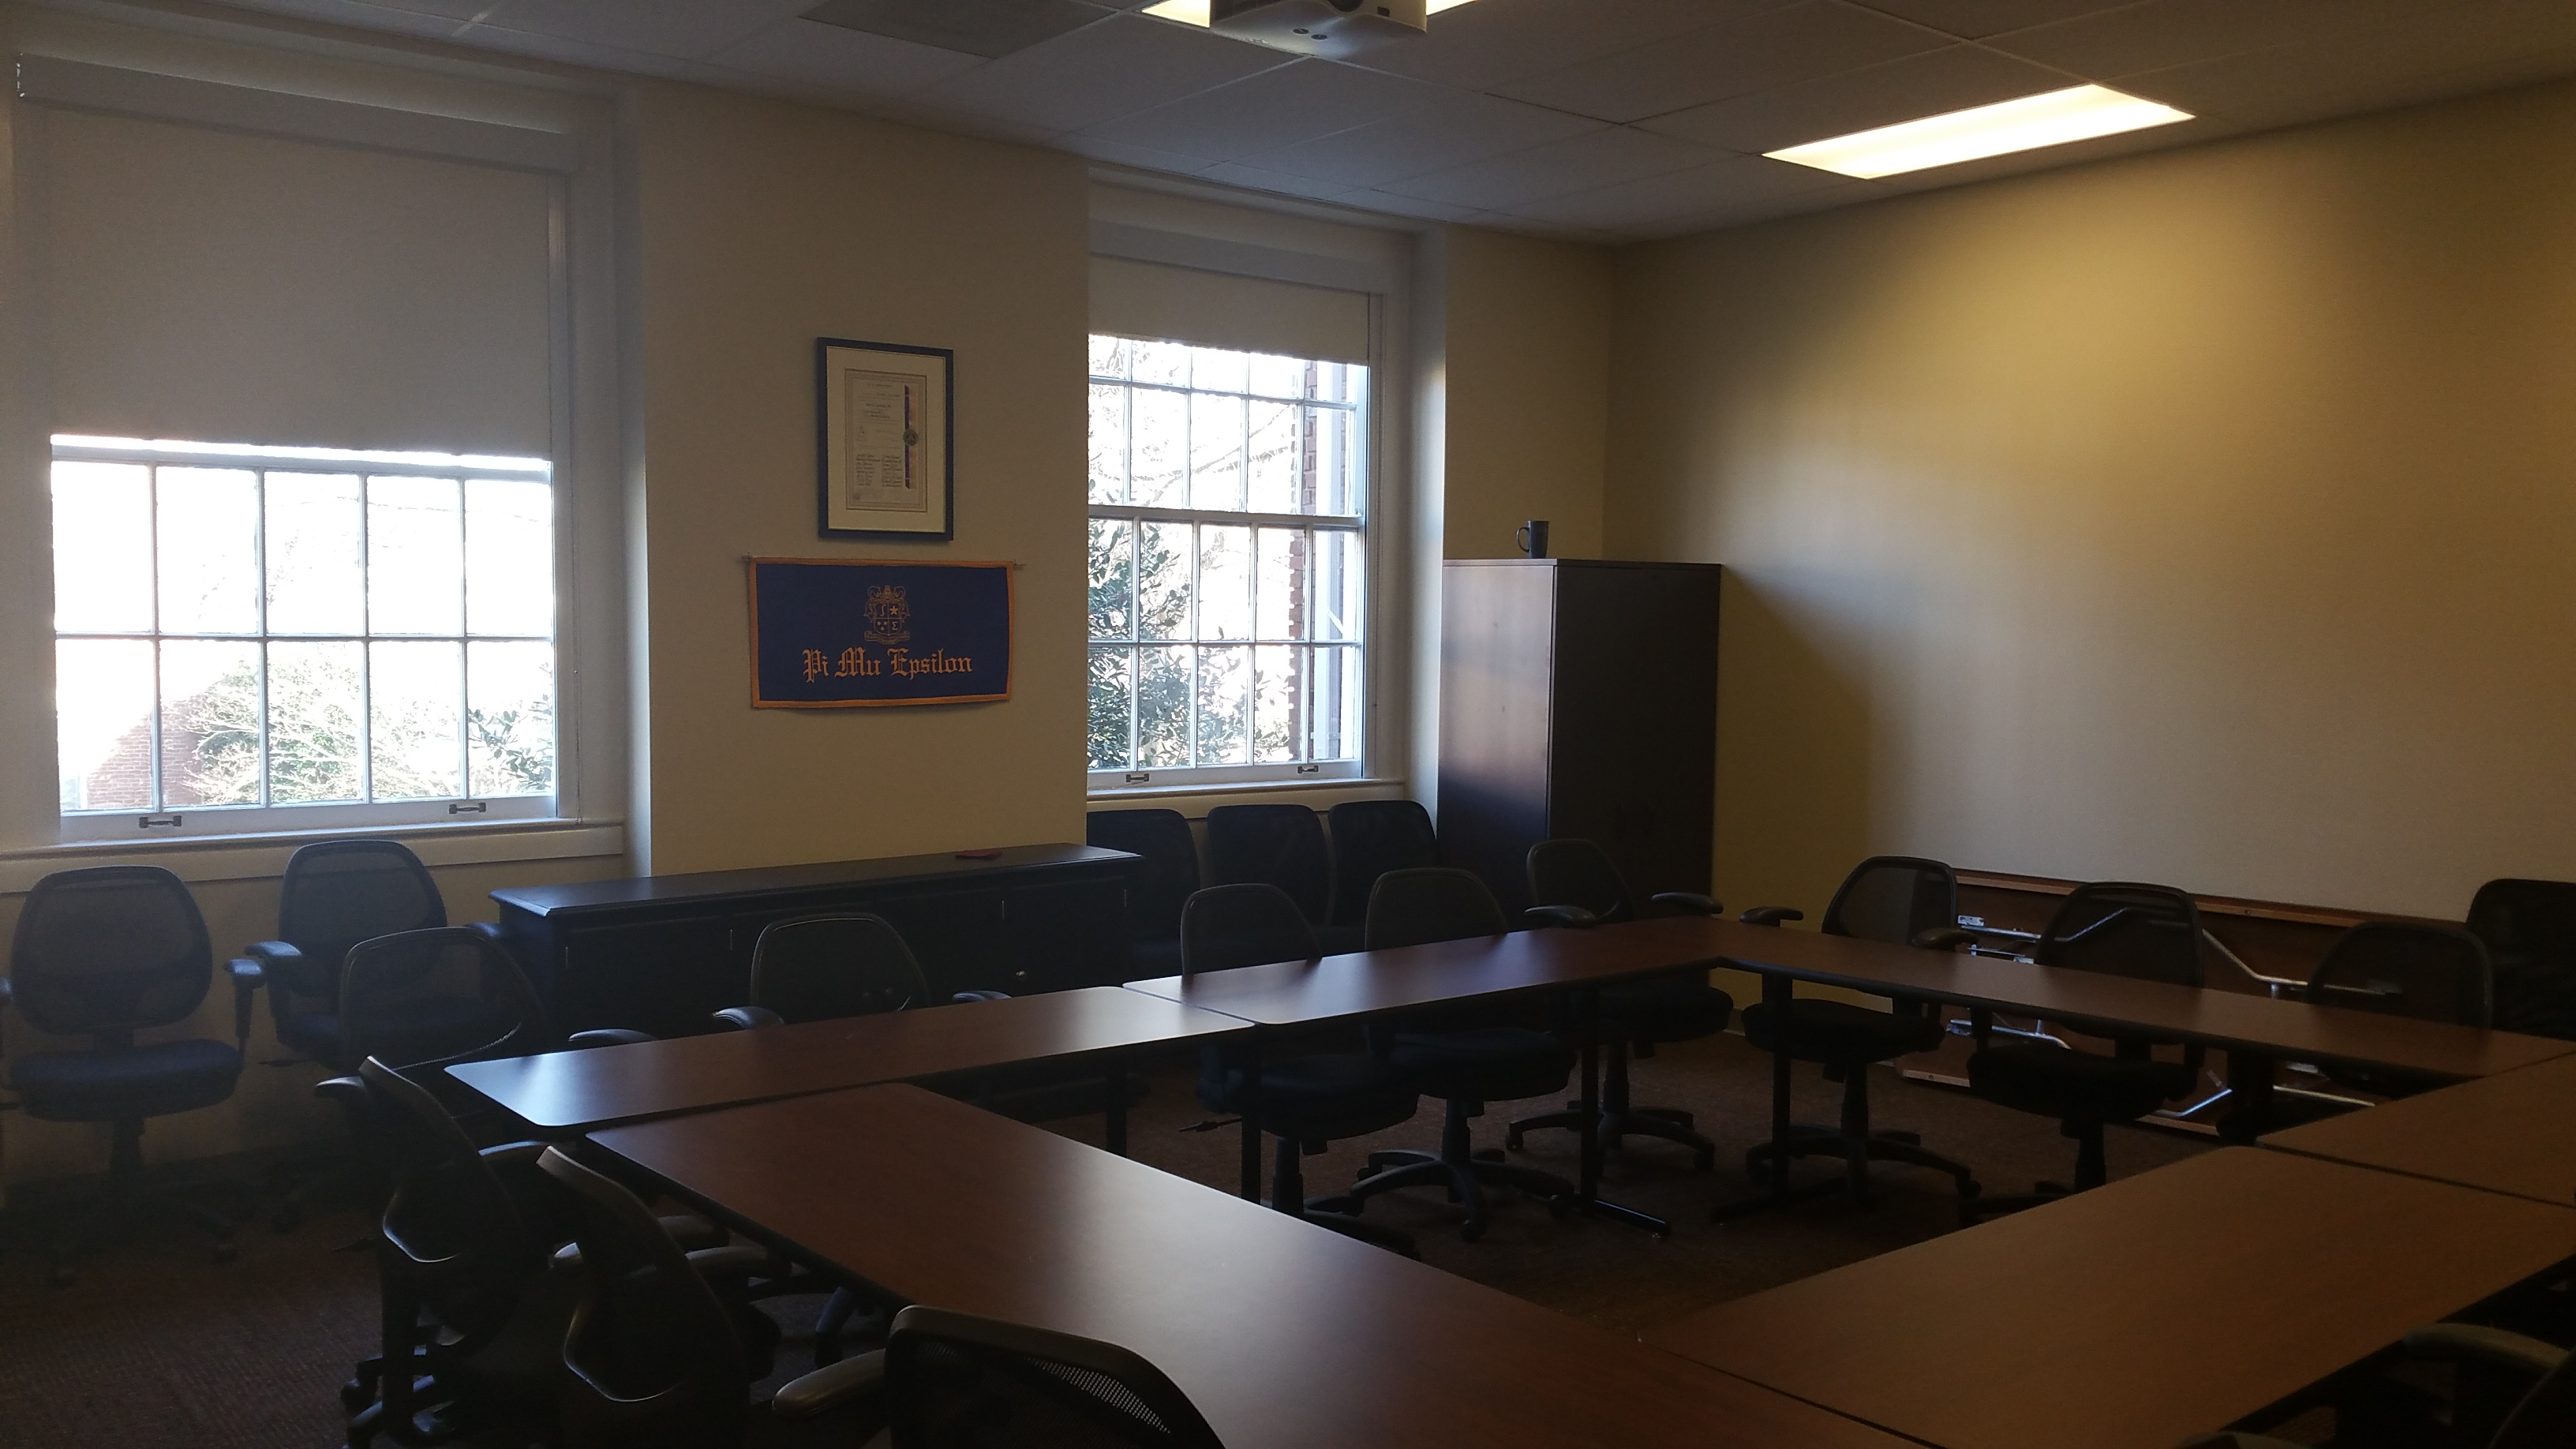 Photo of classroom taken from front of the room showing student tables and windows